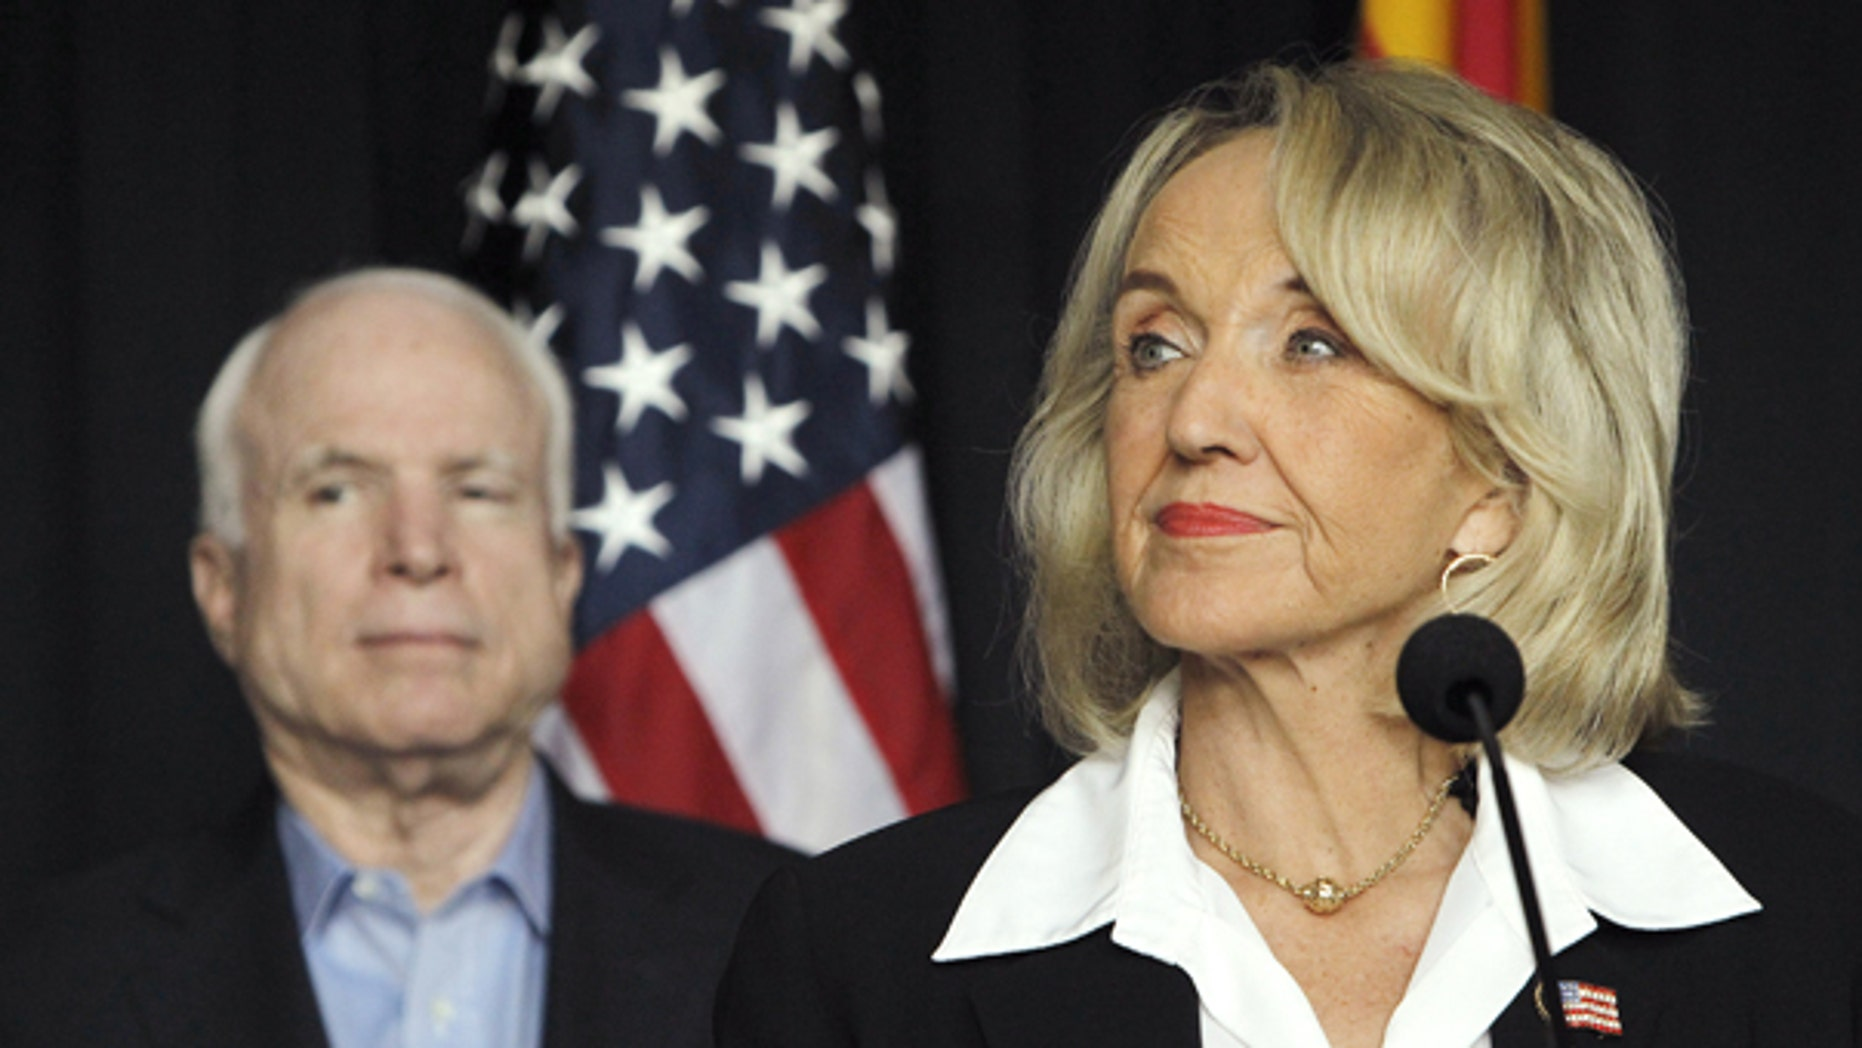 July 30: Gov. Jan Brewer, accompanied by Sen. John McCain pauses before answering a question regarding the latest on the new Arizona immigration law. The two held a news conference to applaud a U.S. Air Force decision to base new F-35 combat jets at Luke Air Force Base in Glendale, a suburb of Phoenix, but the event abruptly ended when the barrage of questions were regarding the immigration law and the next steps the governor was taking in the court battle.